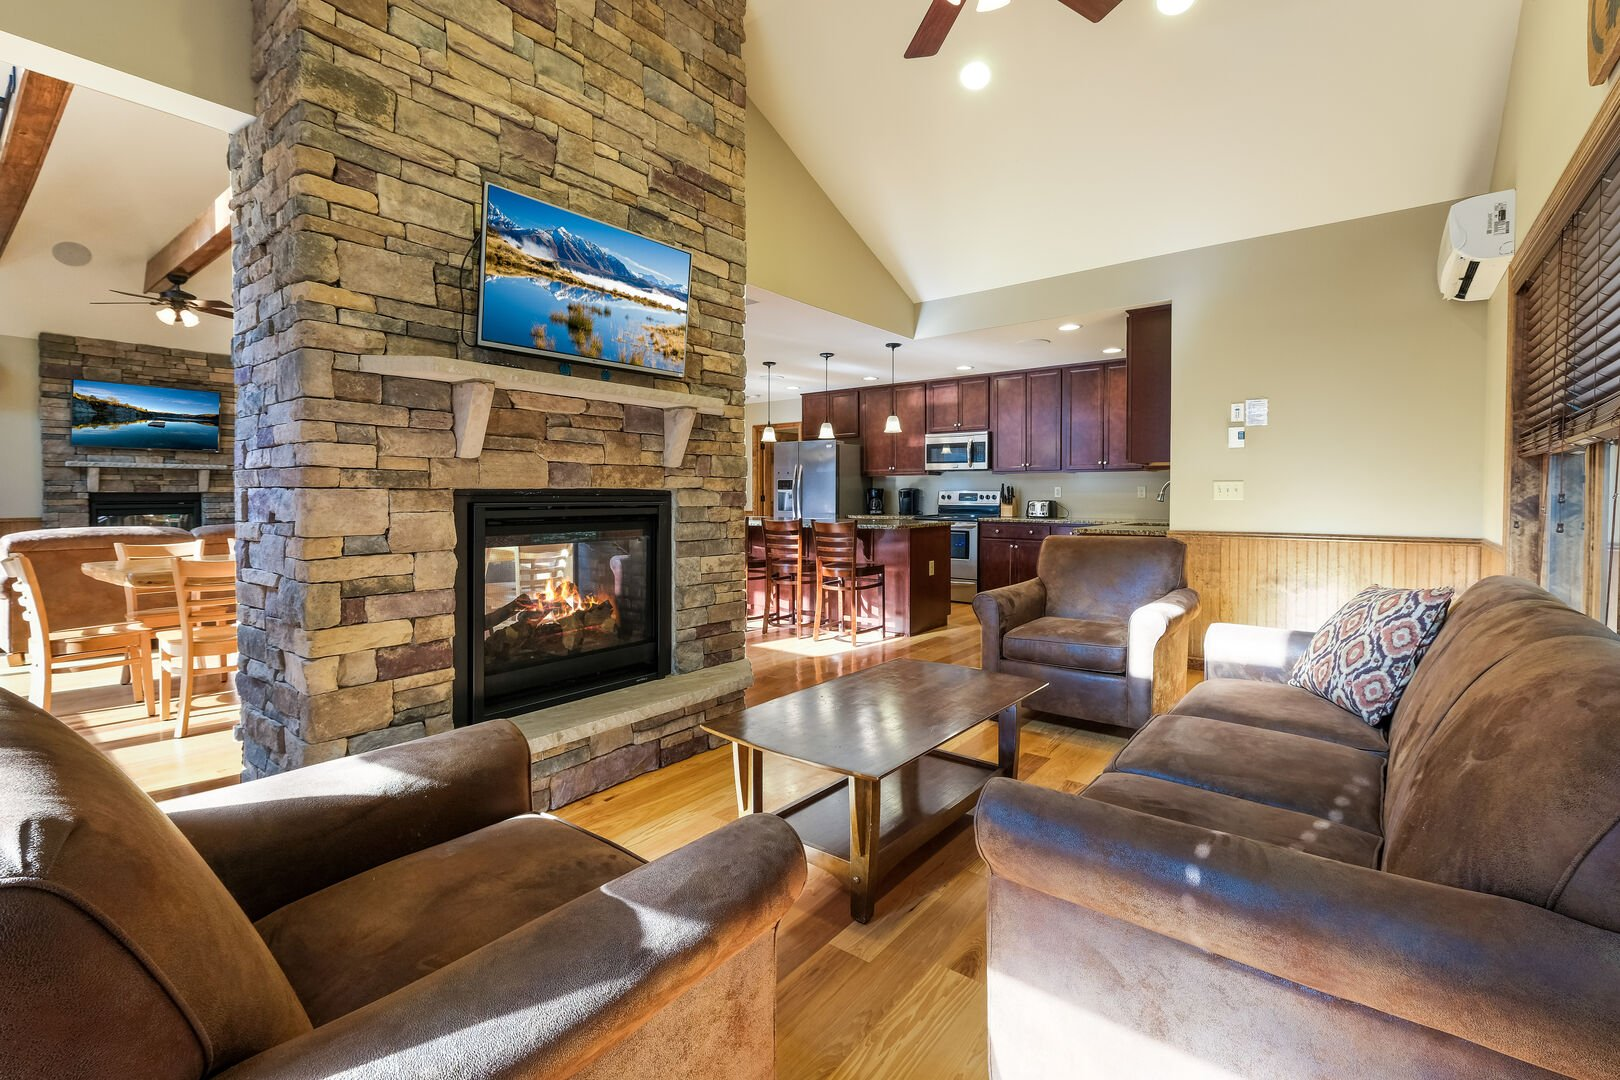 The great room of this luxurious Poconos vacation rental, with couches, coffee table, fireplace, and TV.